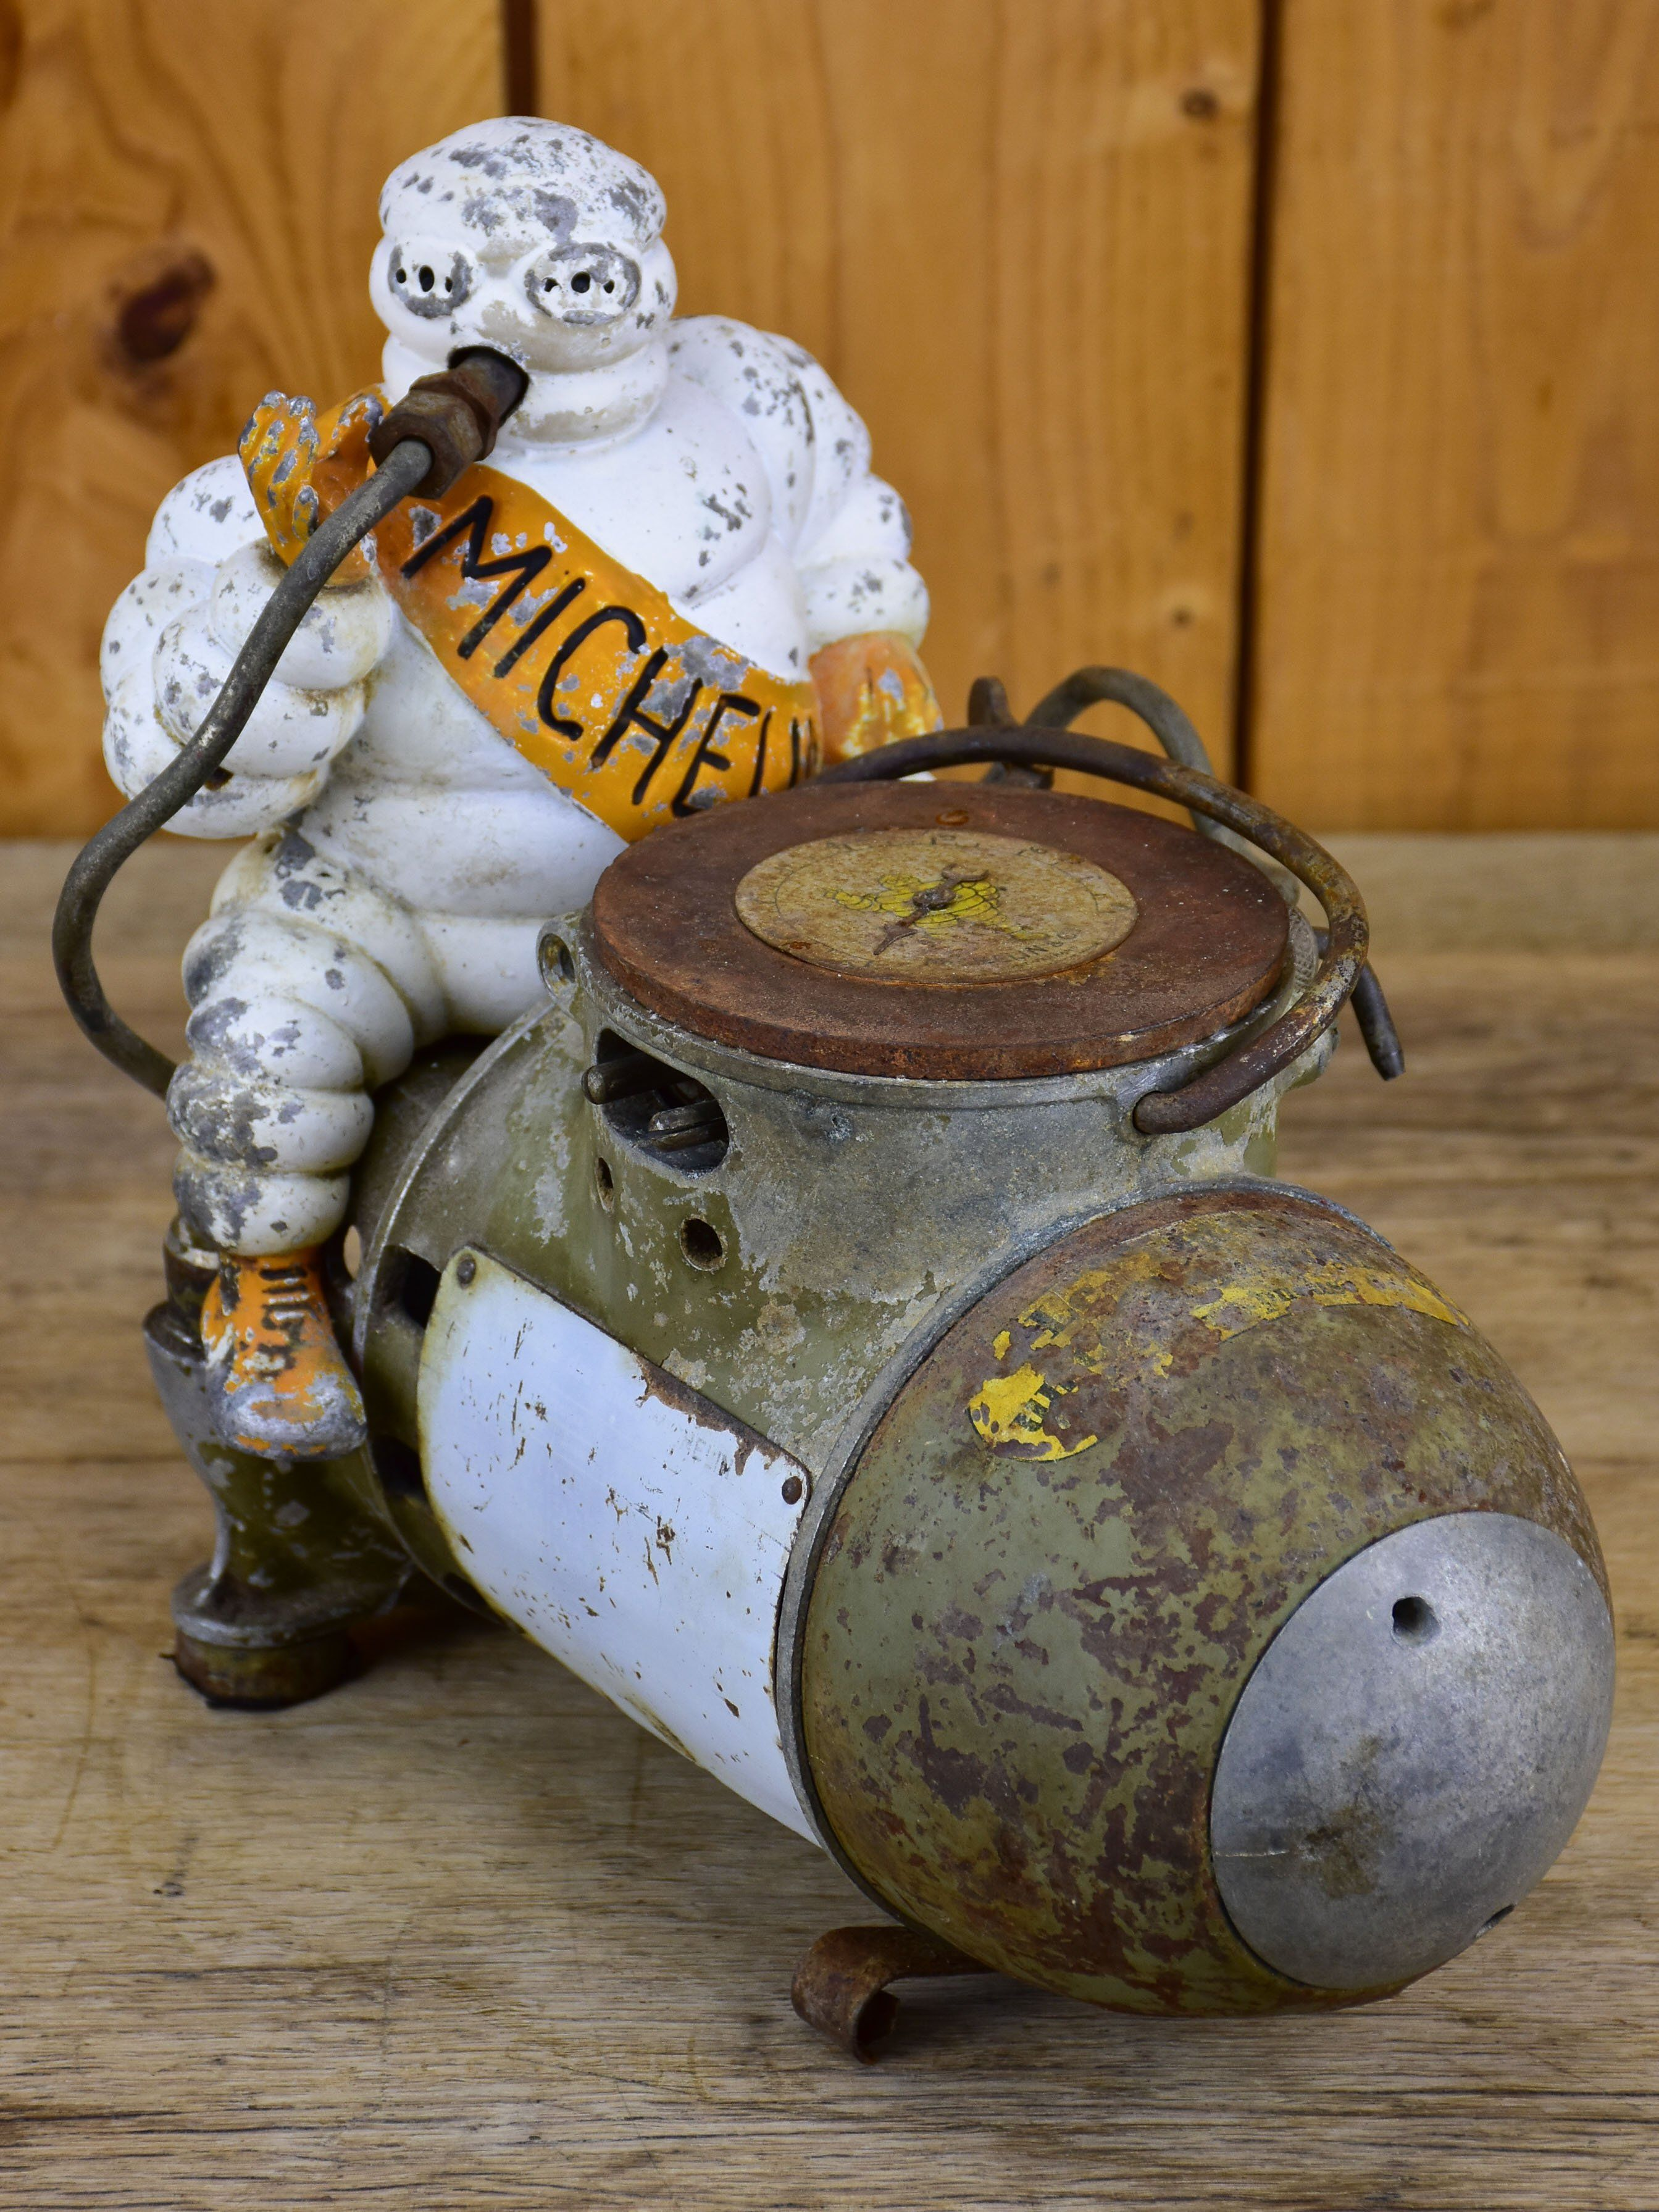 Michelin man air compressor 1930's Air compressor